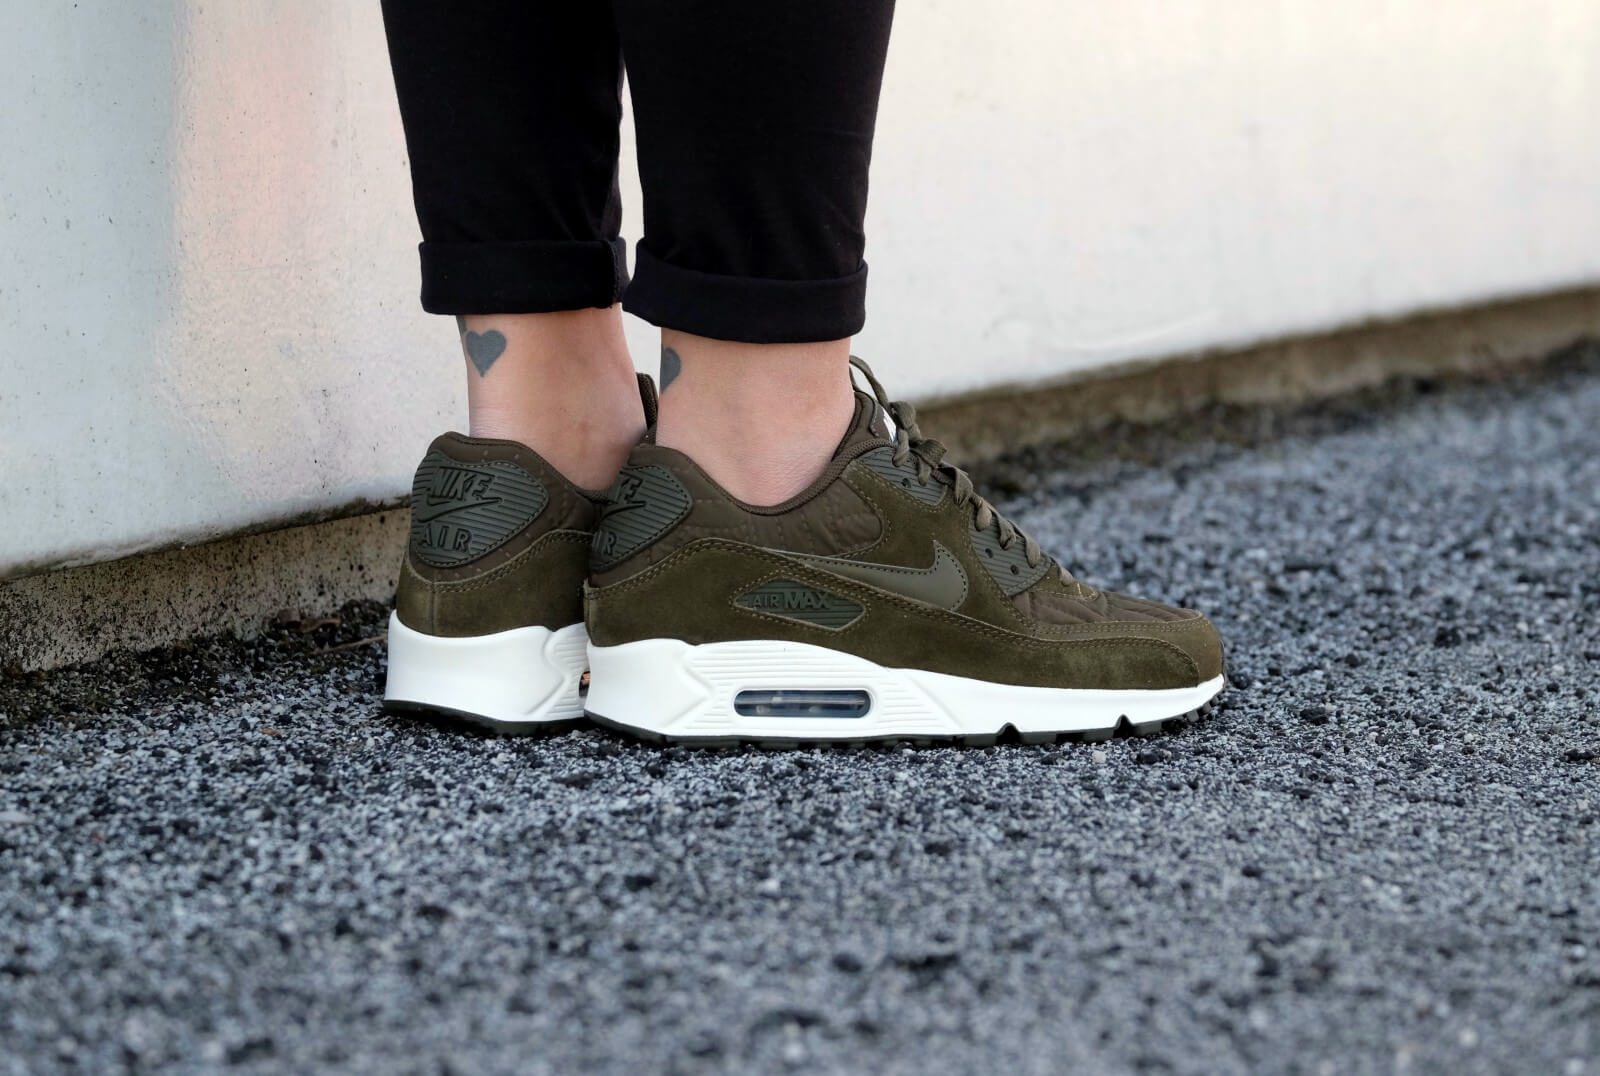 100% top quality first look clearance prices Nike Wmns Air Max 90 Premium Dark Loden-Ivory - 443817-300